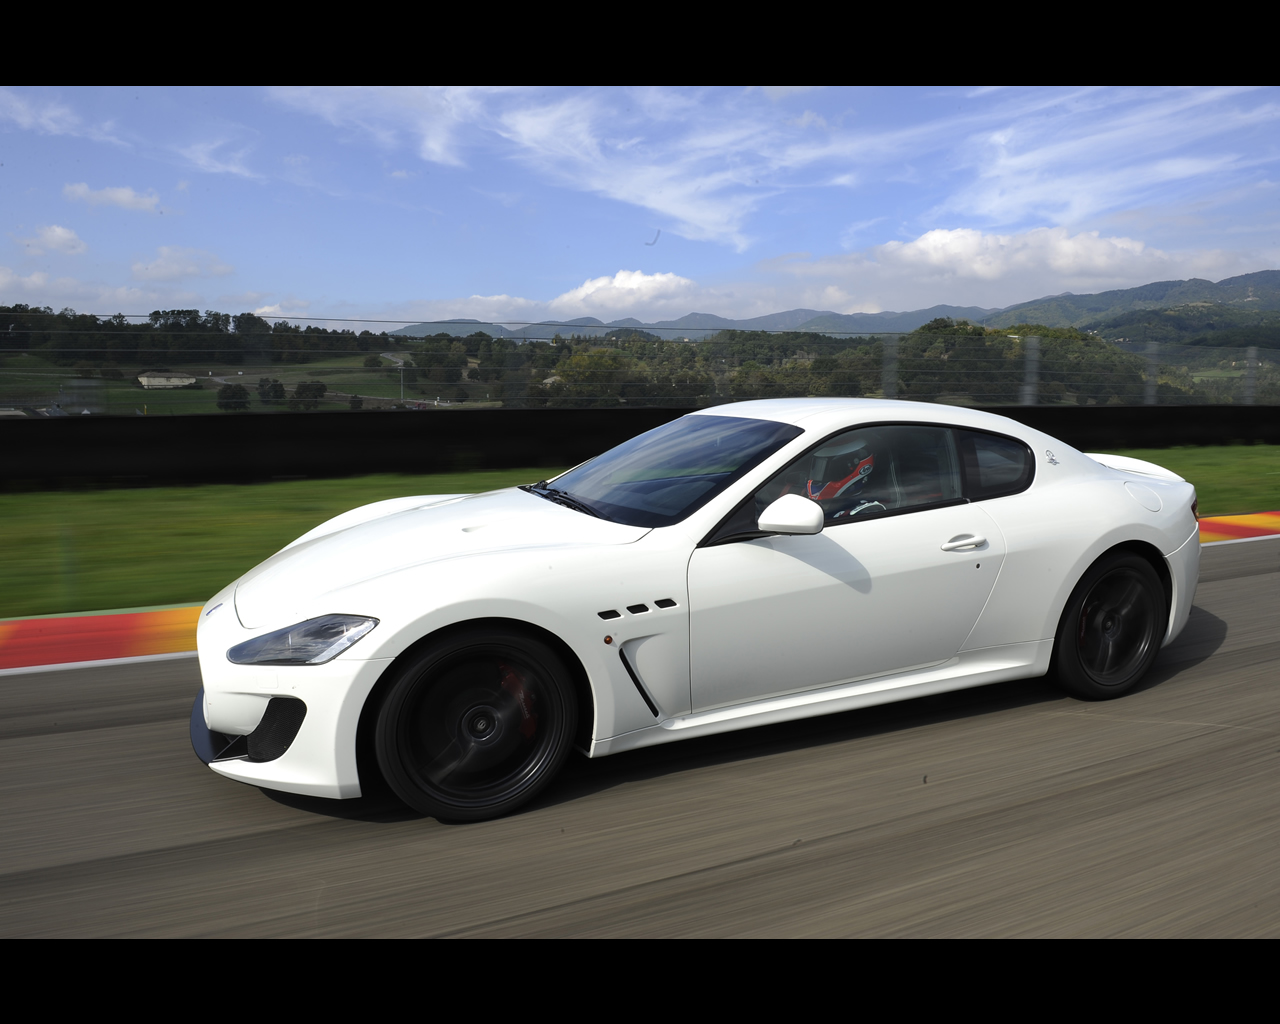 maserati gran turismo mc stradale 2010. Black Bedroom Furniture Sets. Home Design Ideas